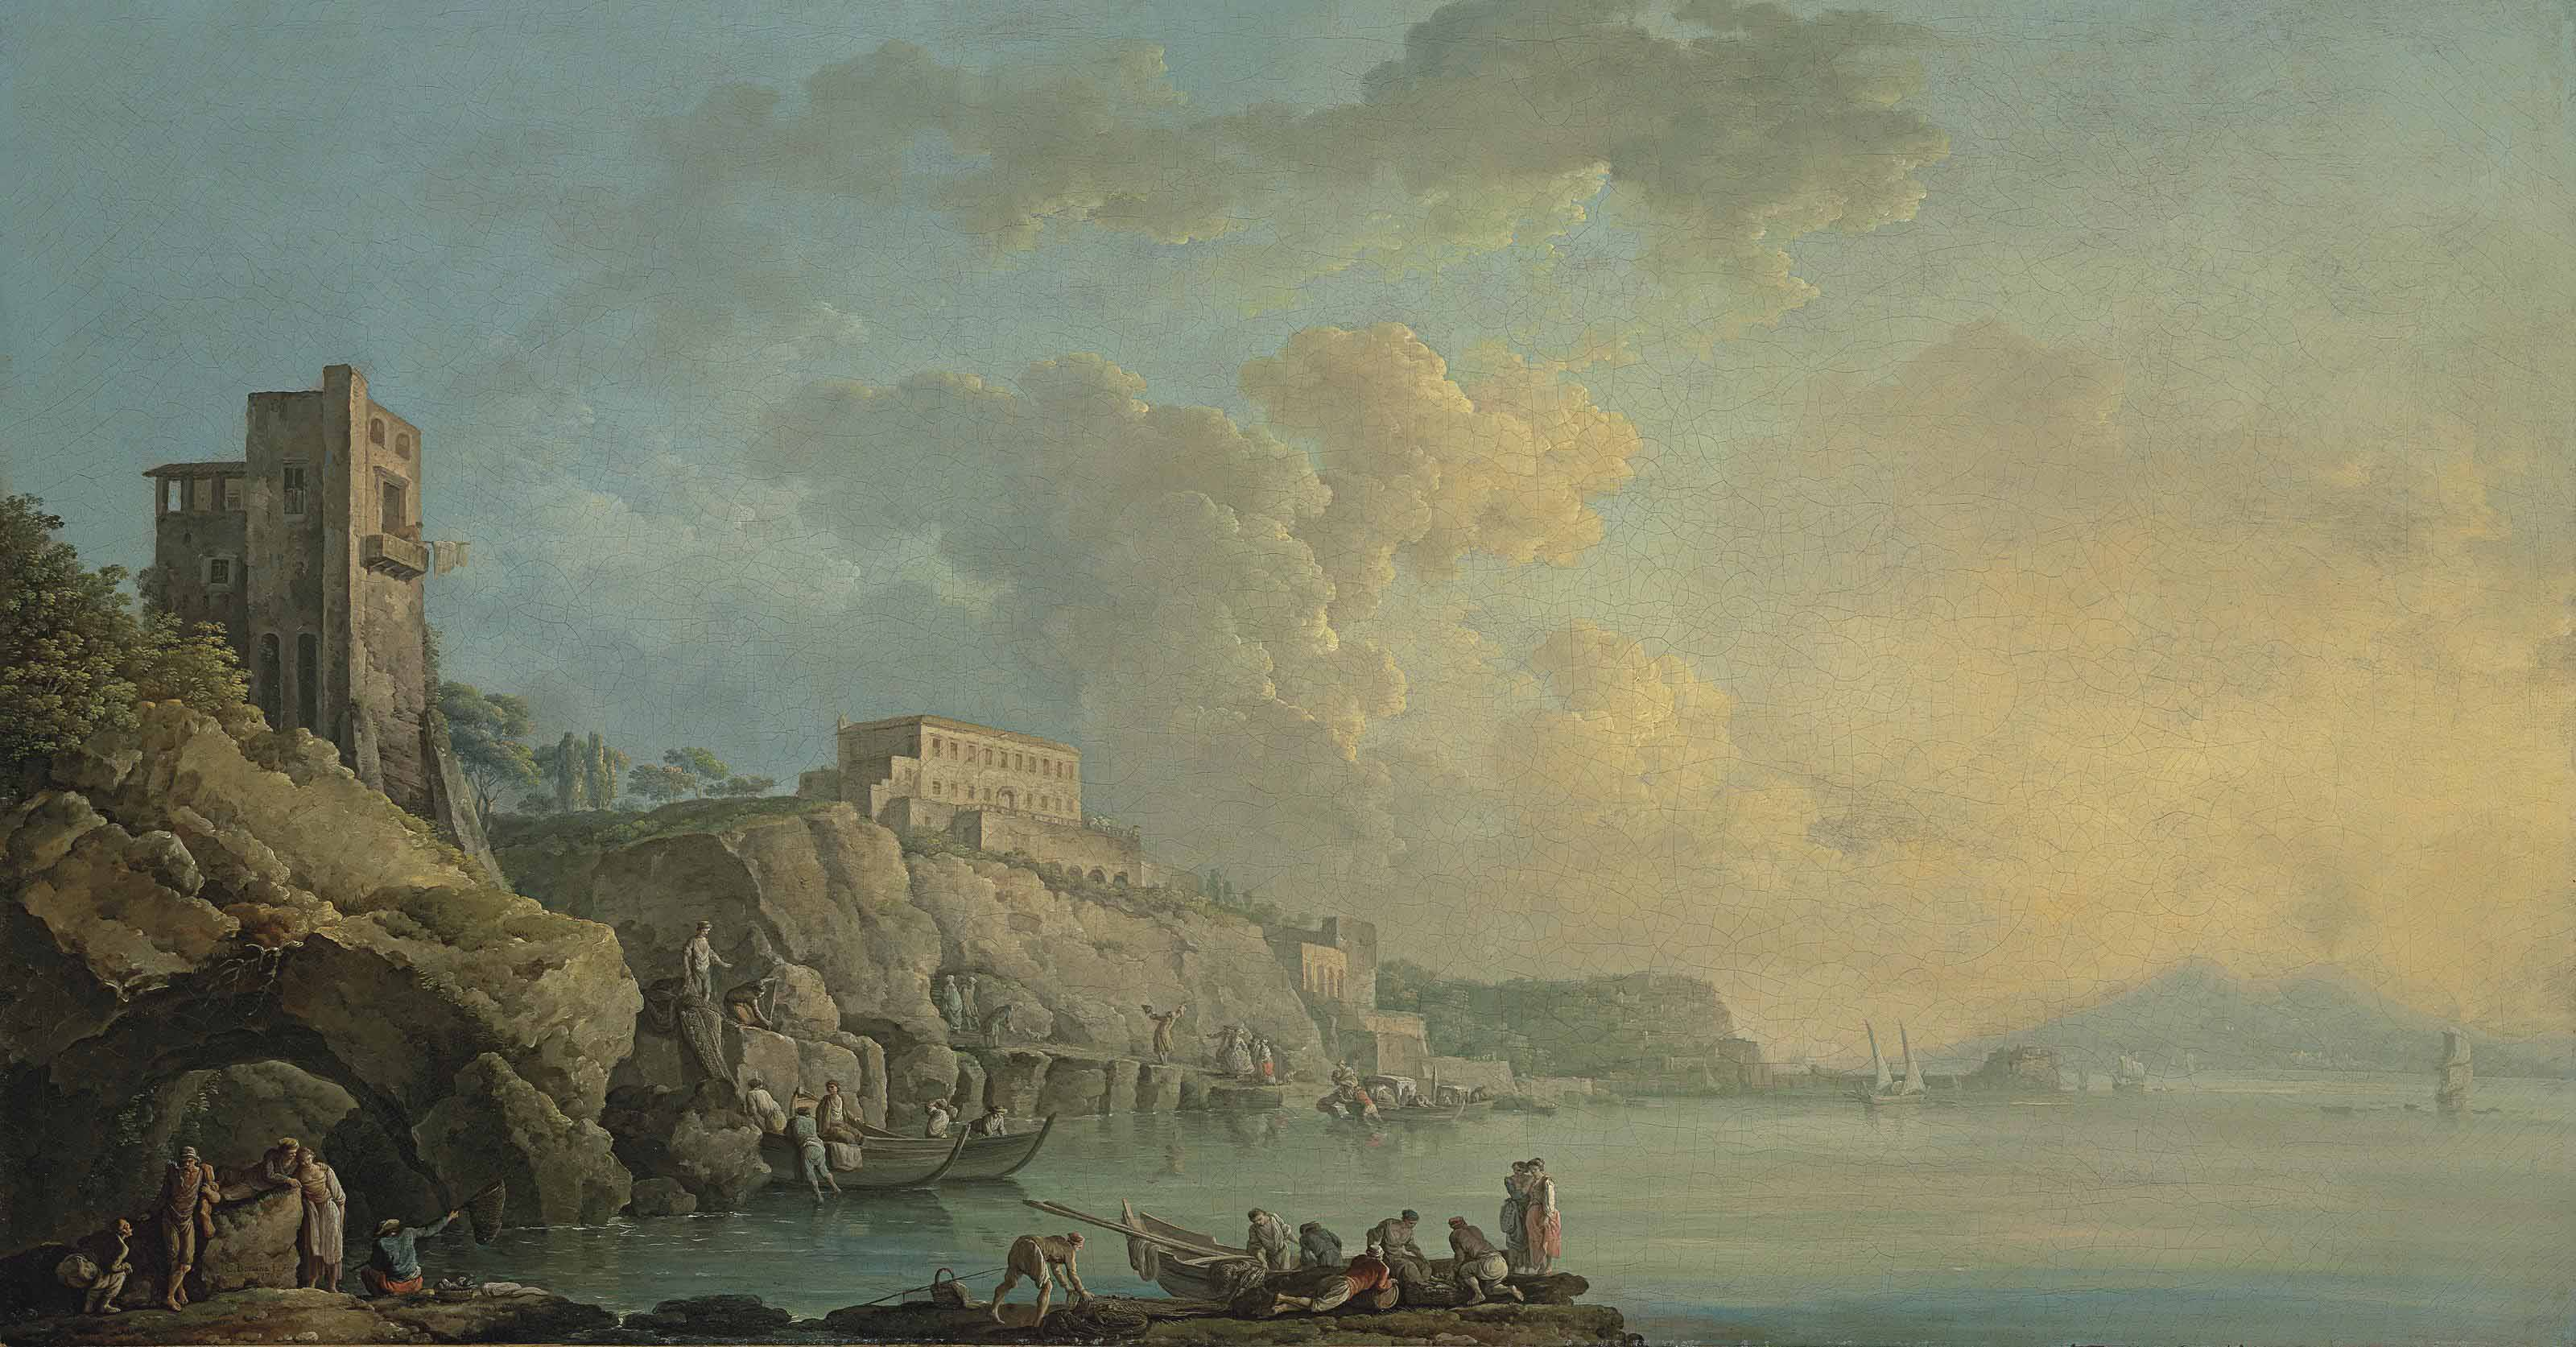 A view of the coast of Posillipo and the bay of Naples, with fishermen and other figures in the foreground, Mount Vesuvius in the distance